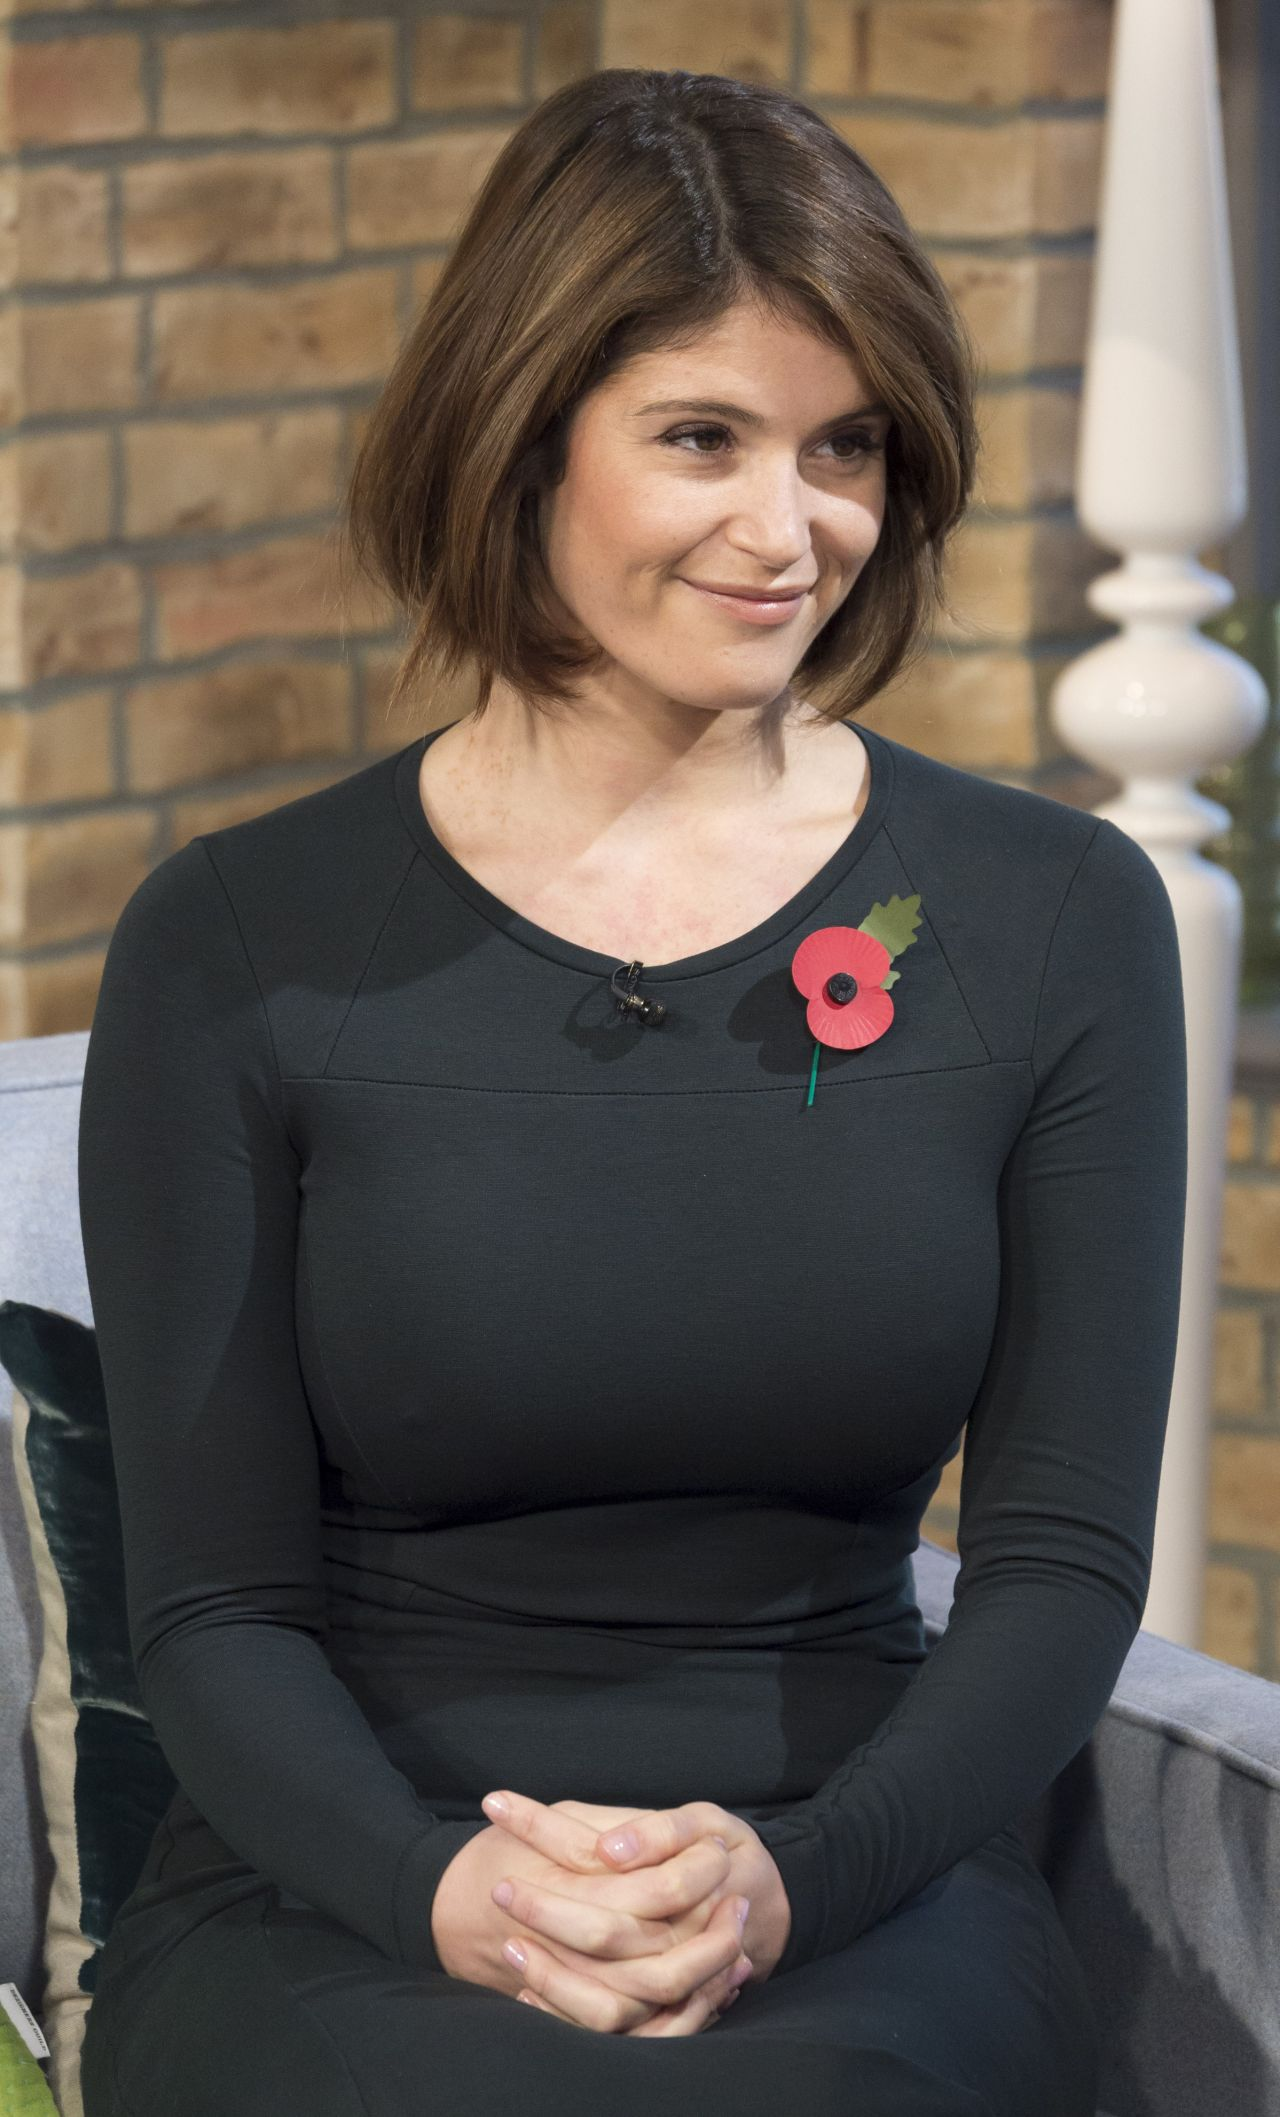 Gemma Arterton At Itvs This Morning In London-1284